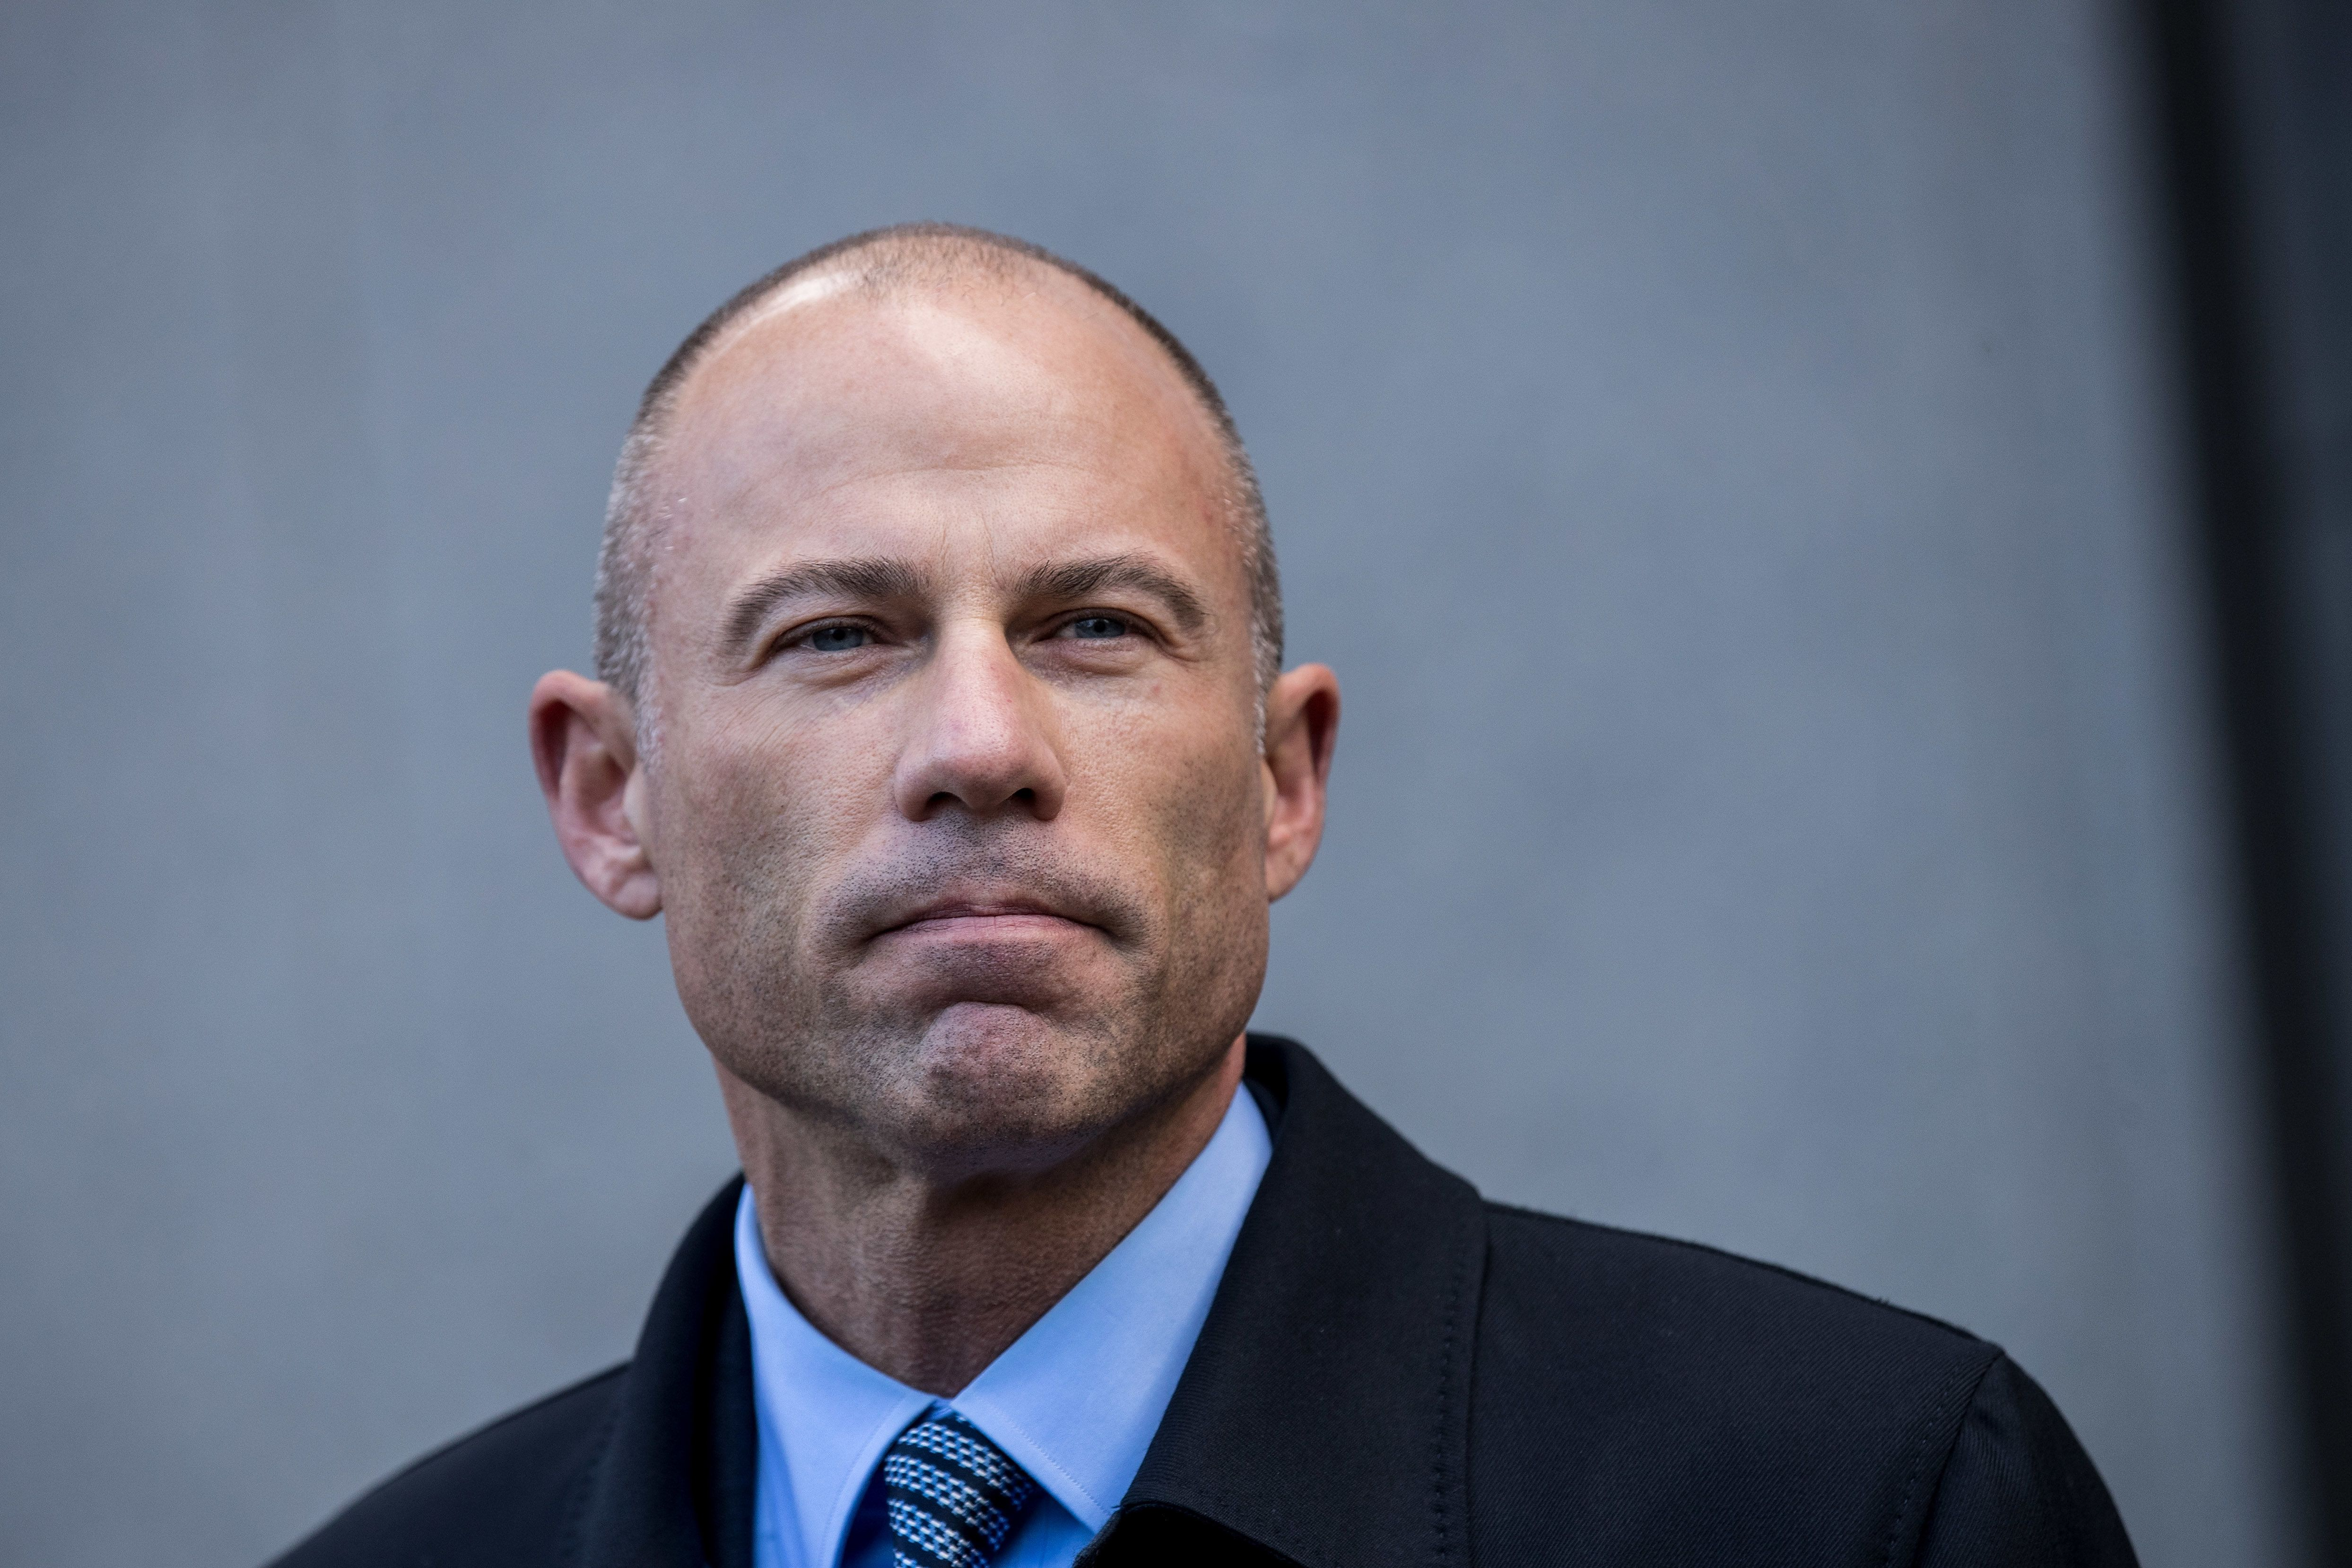 NEW YORK, NY - APRIL 16: Michael Avenatti, attorney for Stormy Daniels, speaks to reporters as he exits the United States District Court Southern District of New York for a hearing related to Michael Cohen, President Trump's longtime personal attorney and confidante, April 16, 2018 in New York City.  Cohen and lawyers representing President Trump are asking the court to block Justice Department officials from reading documents and materials related to Cohen's relationship with President Trump that they believe should be protected by attorney-client privilege. Officials with the FBI, armed with a search warrant, raided Cohen's office and two private residences last week.  (Photo by Drew Angerer/Getty Images)